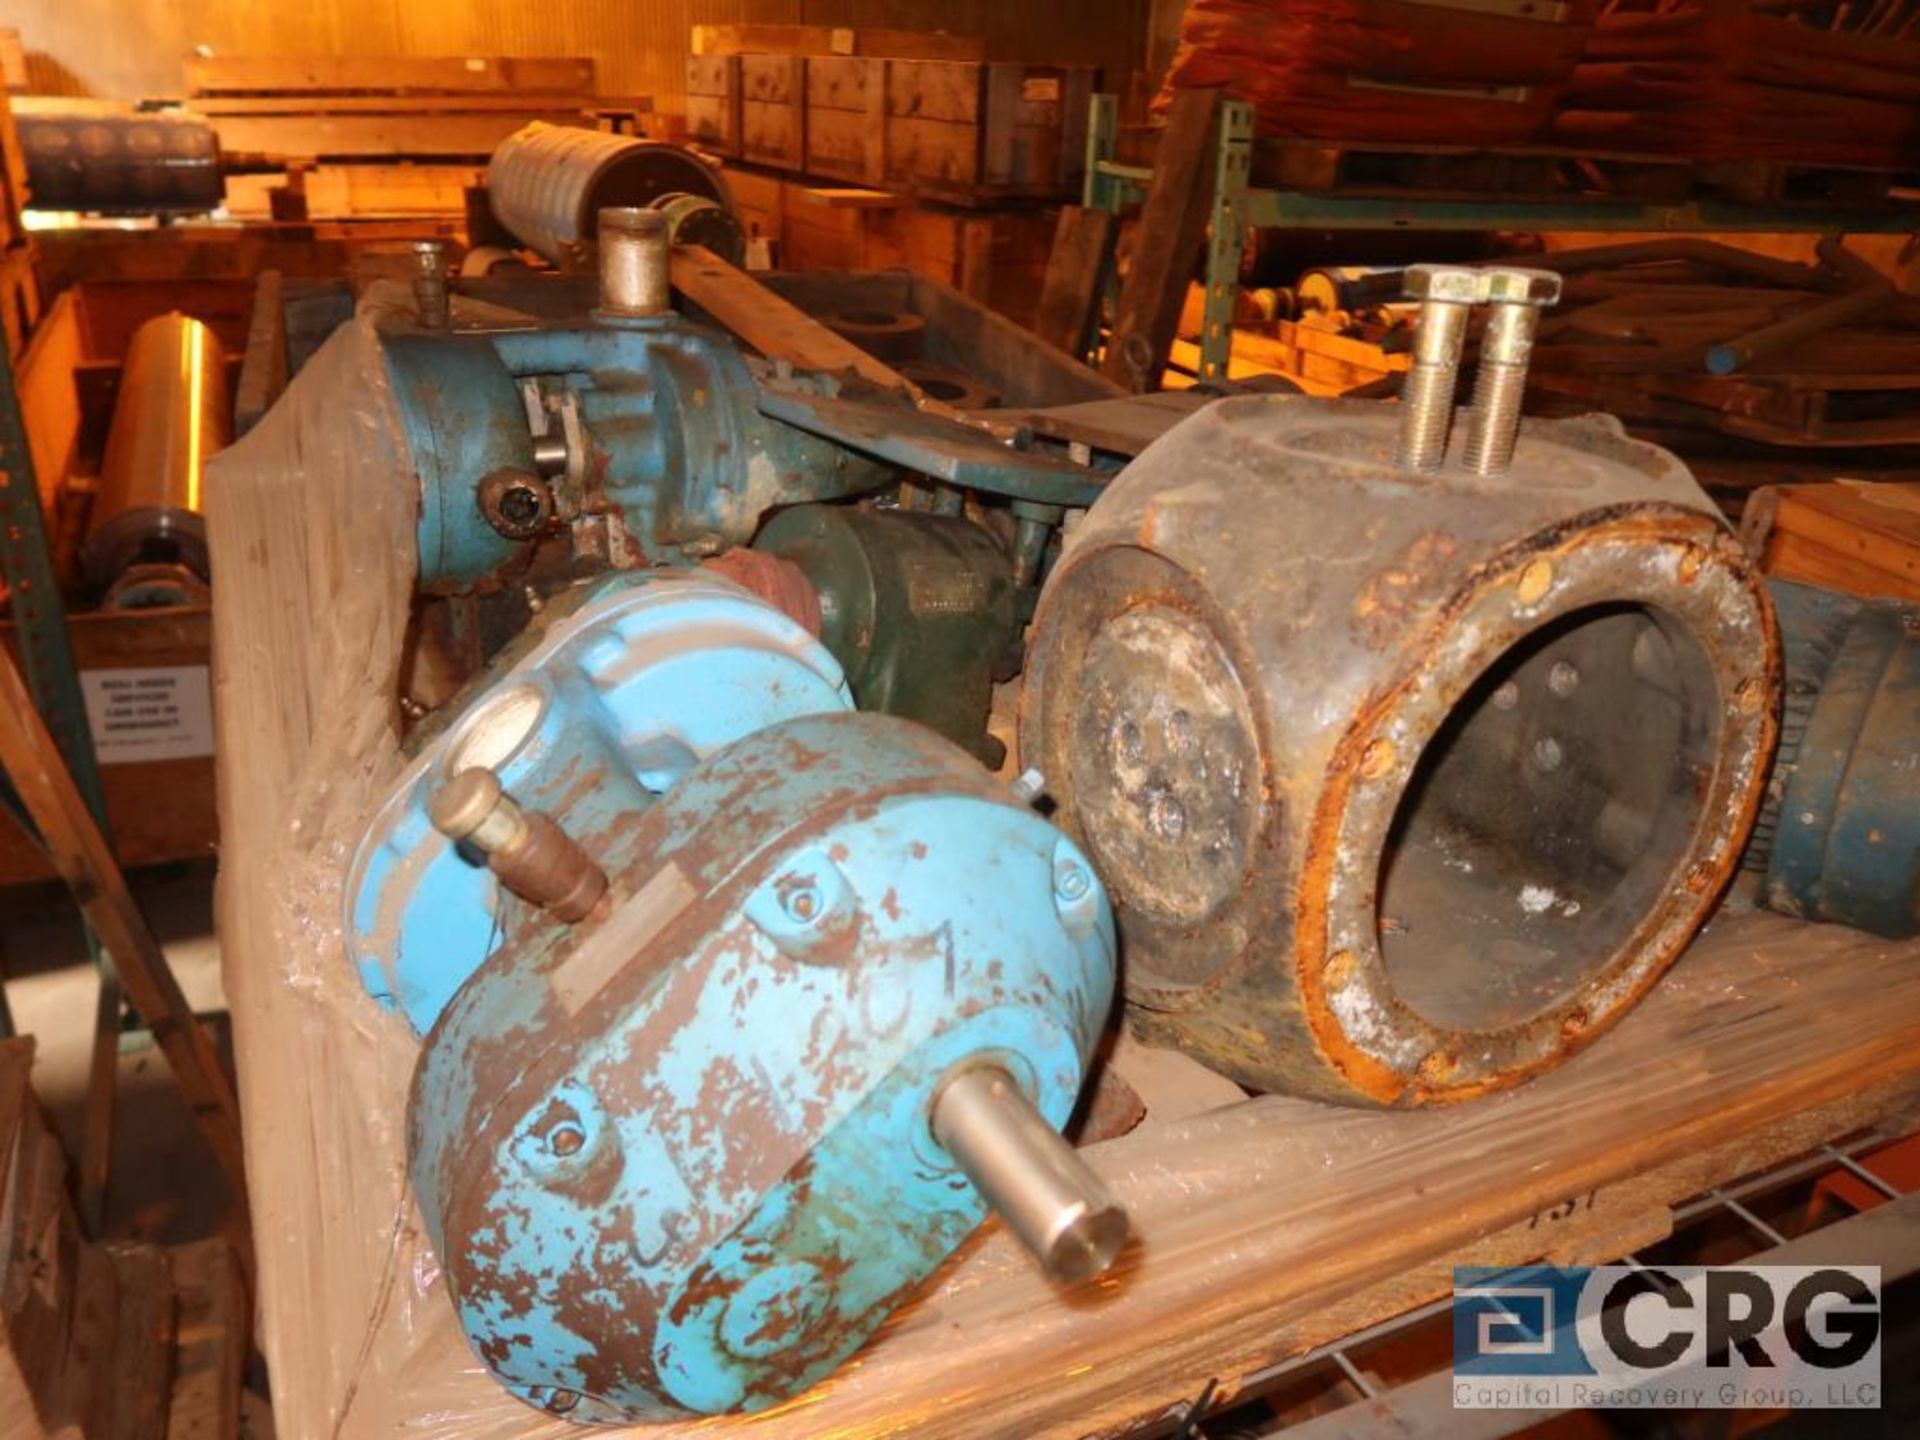 Lot of assorted parts including expansion joint, valves, fan blade, and rotors (Next Bay Cage Area) - Image 7 of 15